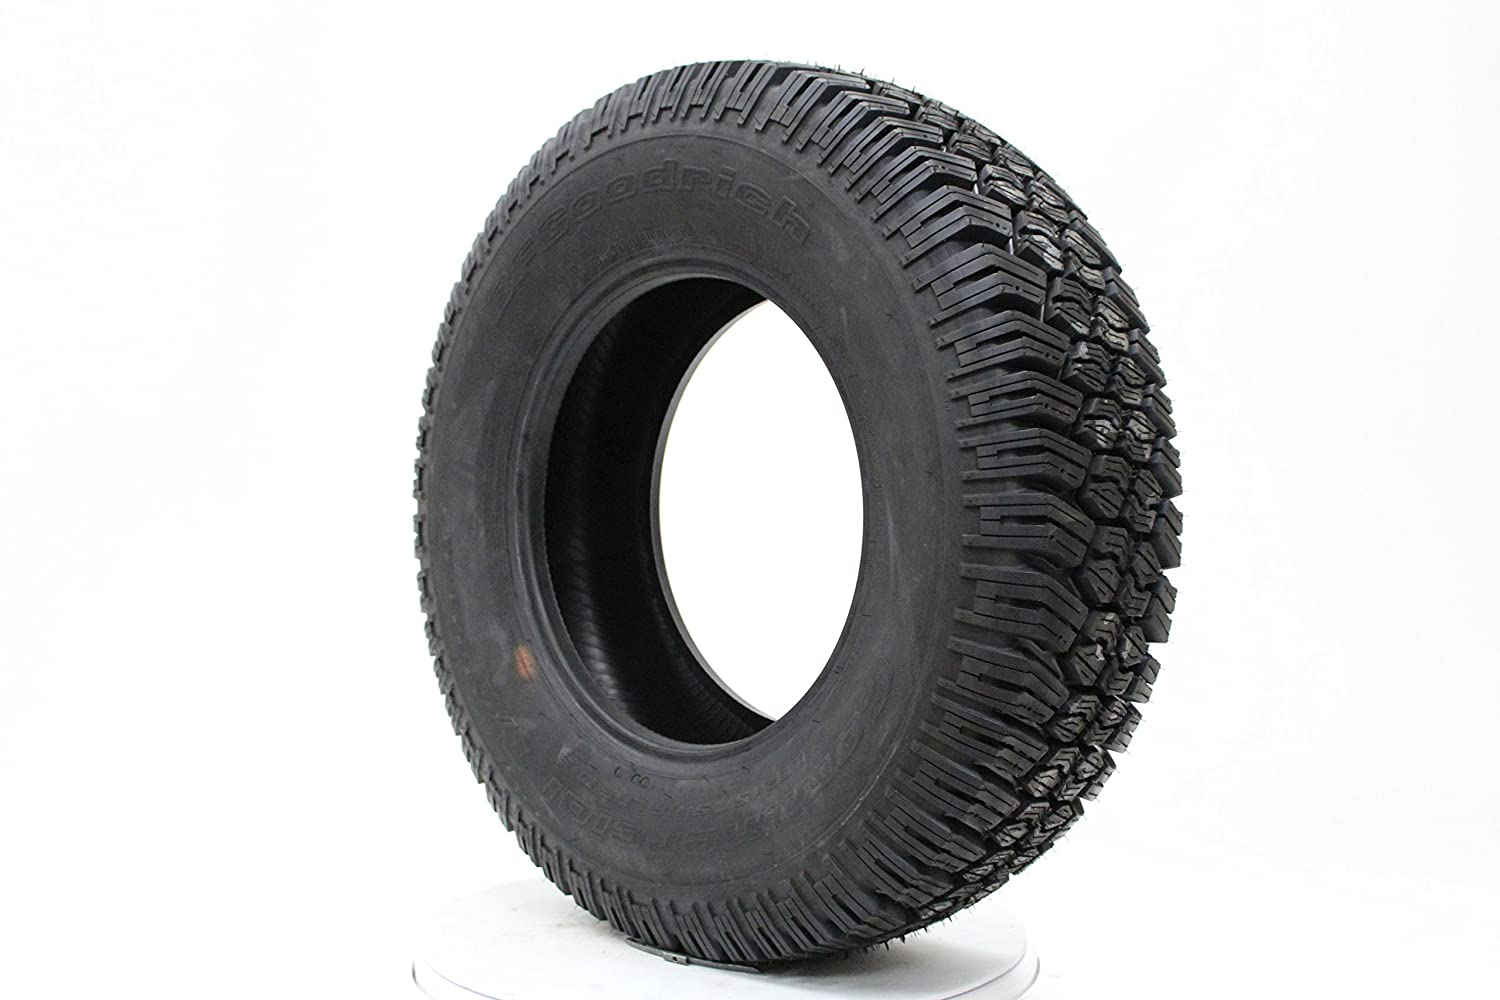 BFGoodrich Commercial T/A Traction Winter Radial Tire - LT265/75R16/E 123Q 53176